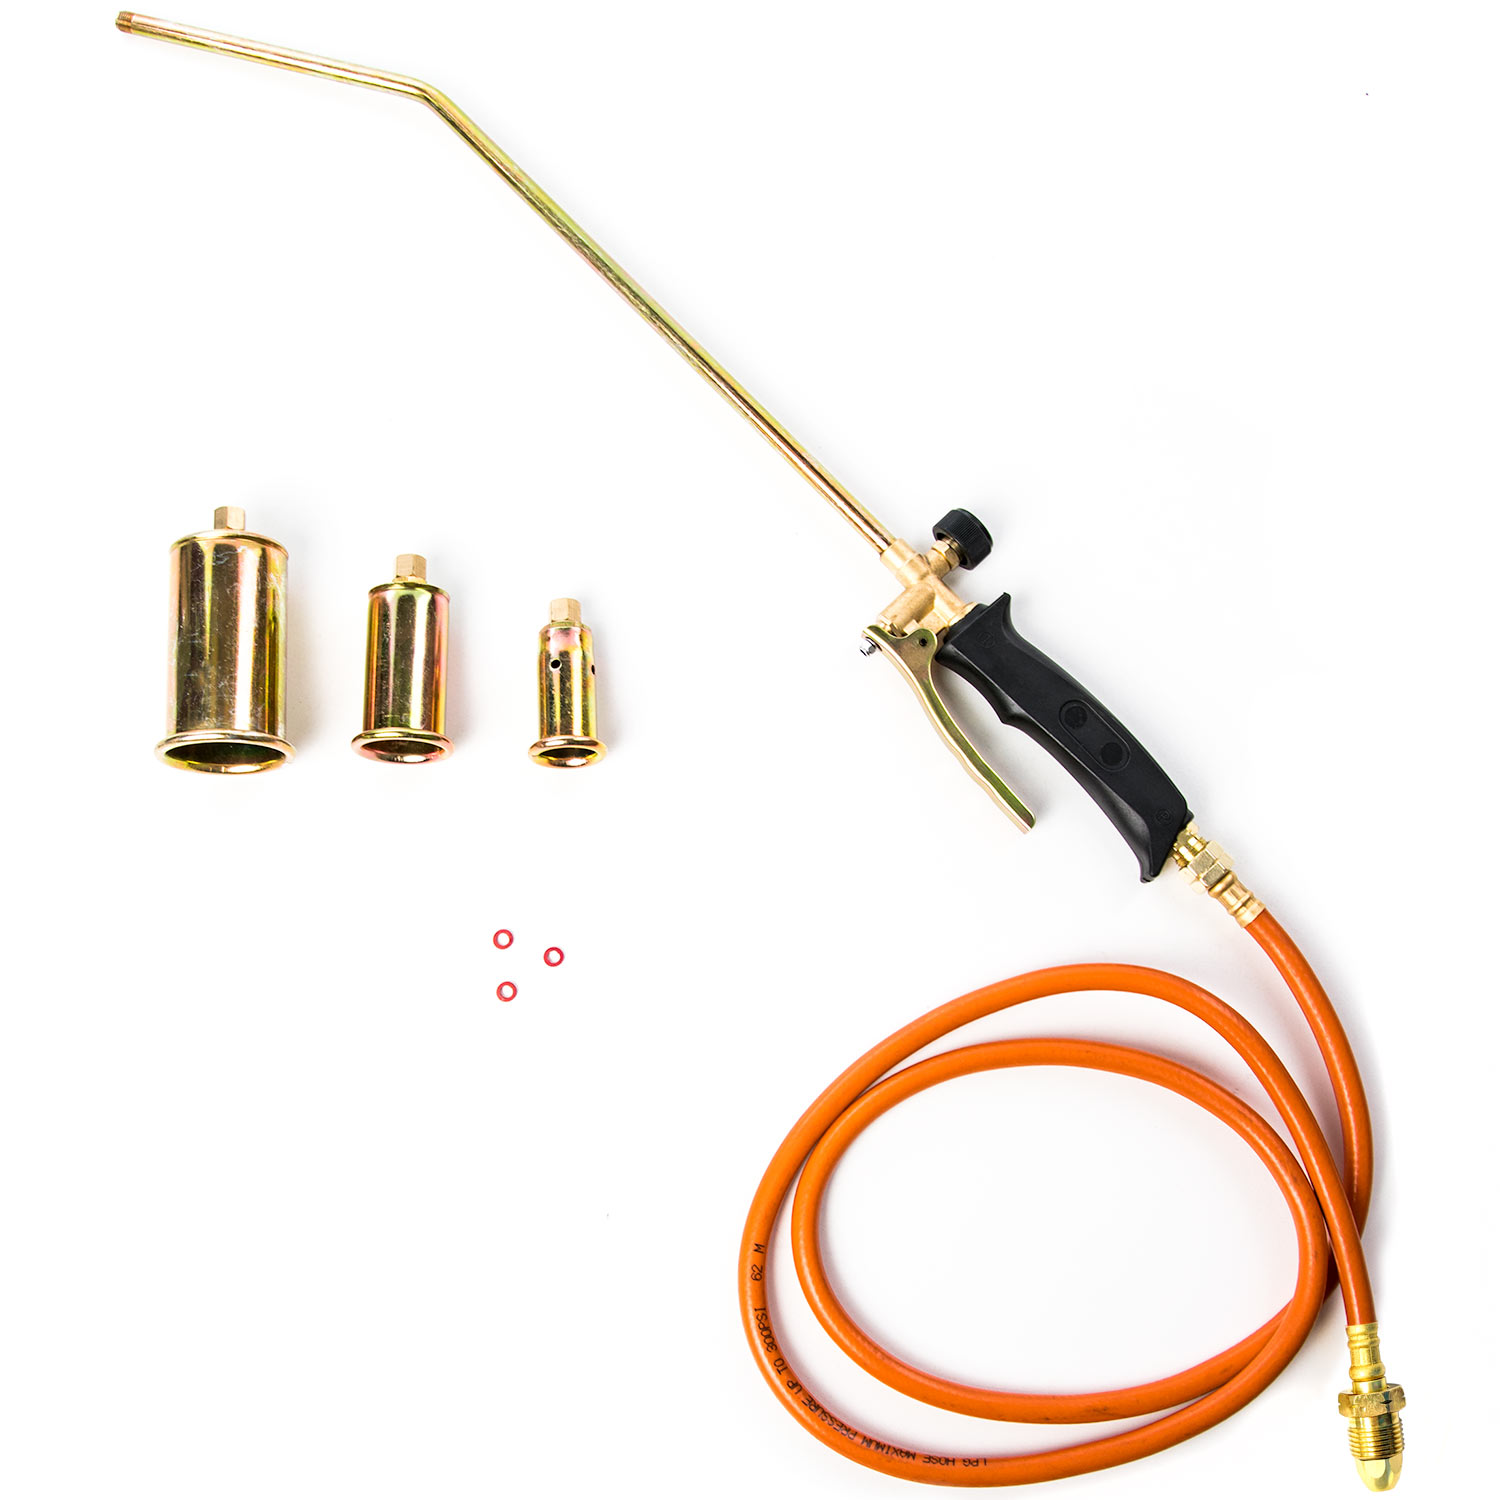 Portable Propane Torch Kit w/ 3x Nozzles - Turbo Blast Trigger and Flow Valve - Burn Weeds, Melt Snow and Ice, Remove Paint, Thaw Pipes, Hot Roofing, Asphalt Repair and More!